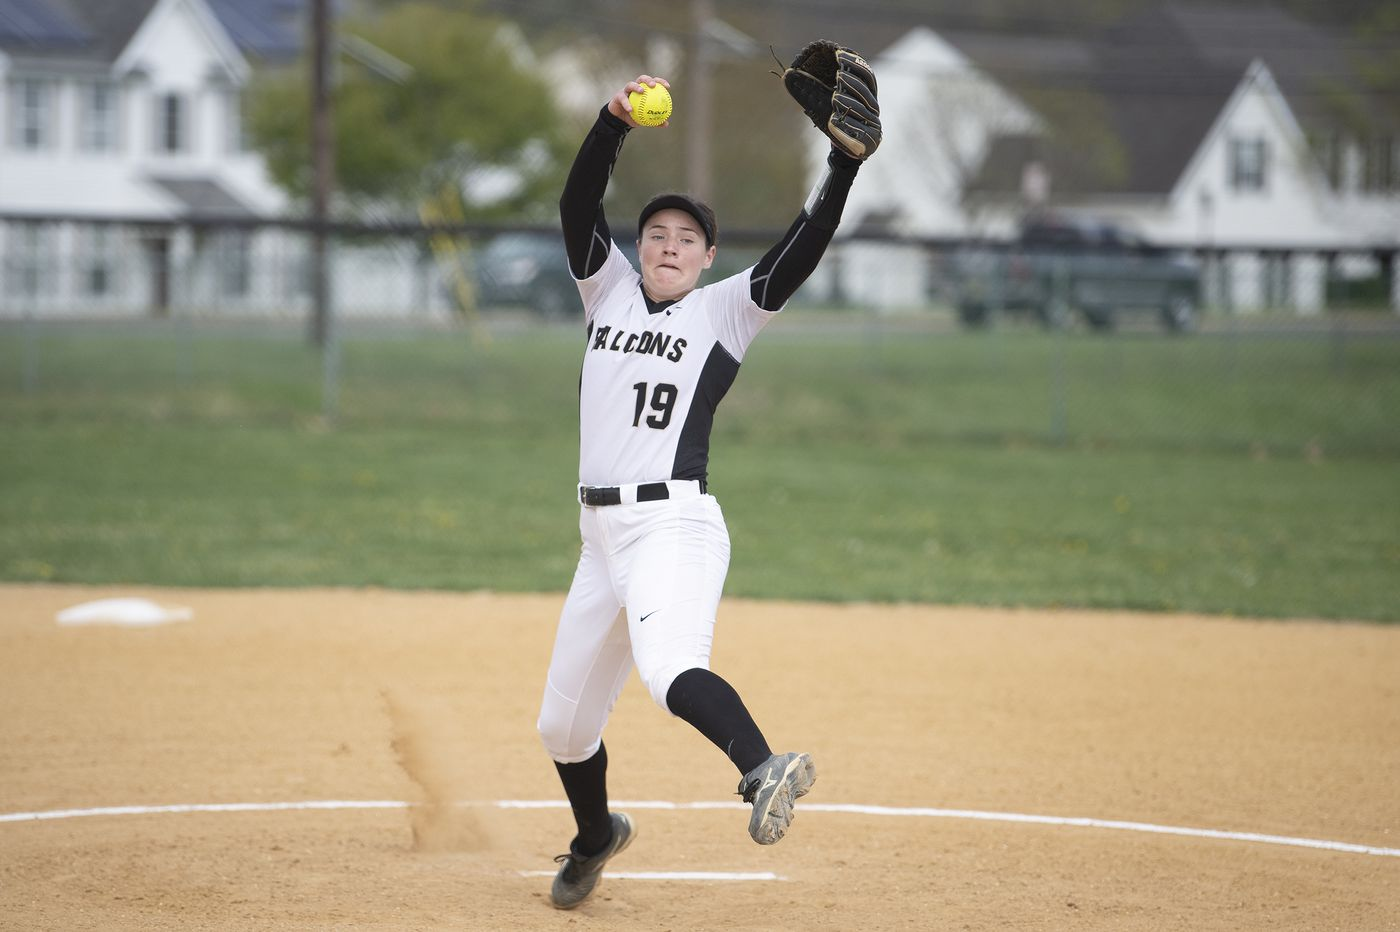 Burlington Township pitcher Bailey Enoch is piling up the strikeouts and the no-hitters